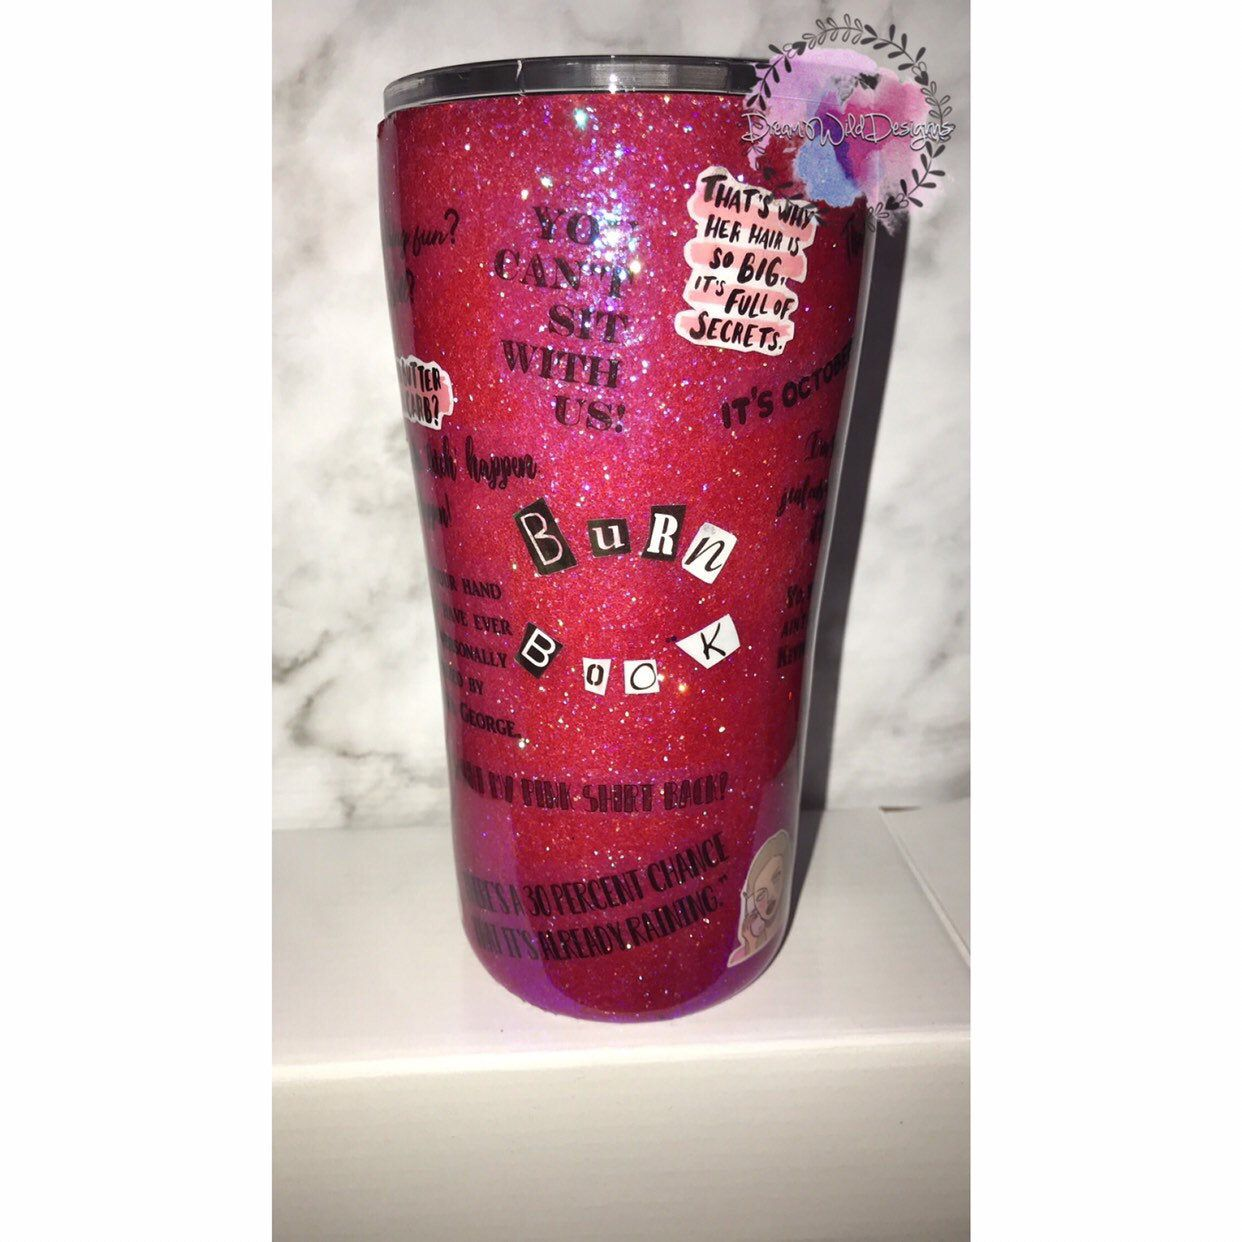 The Burn Book Mean Girls Glitter Stainless Steel Tumbler Cups Tumbler Cups Diy Tumbler Cups Personalized Tumbler Cups